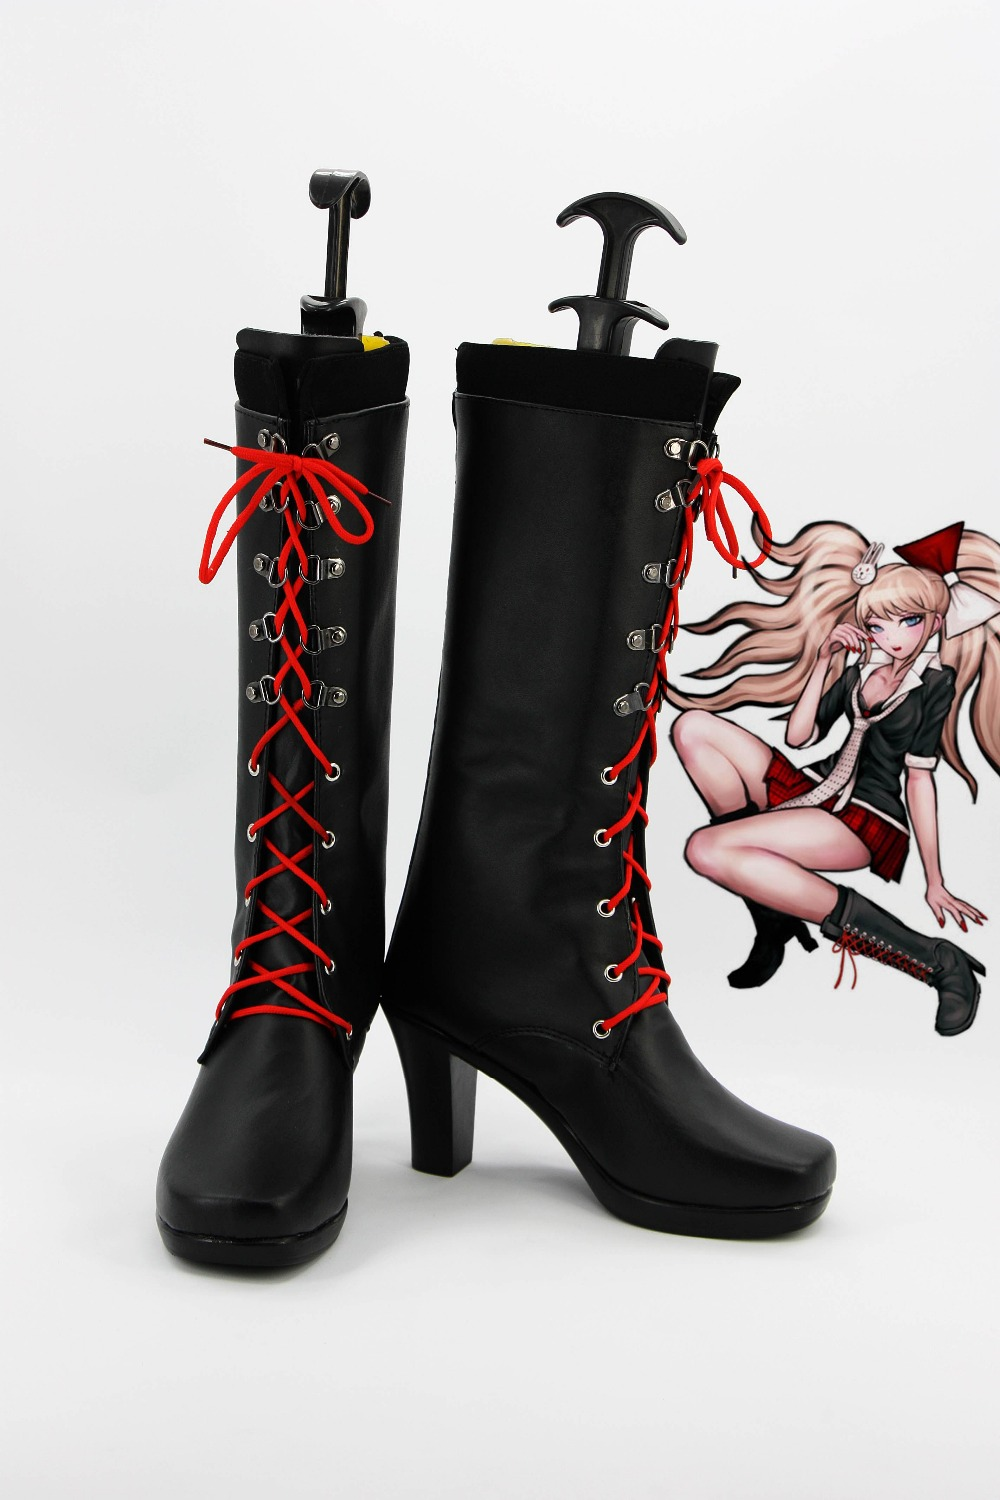 Anime Danganronpa 2 Enoshima Junko Cosplay Boots Lace Up High Heel Shoes New